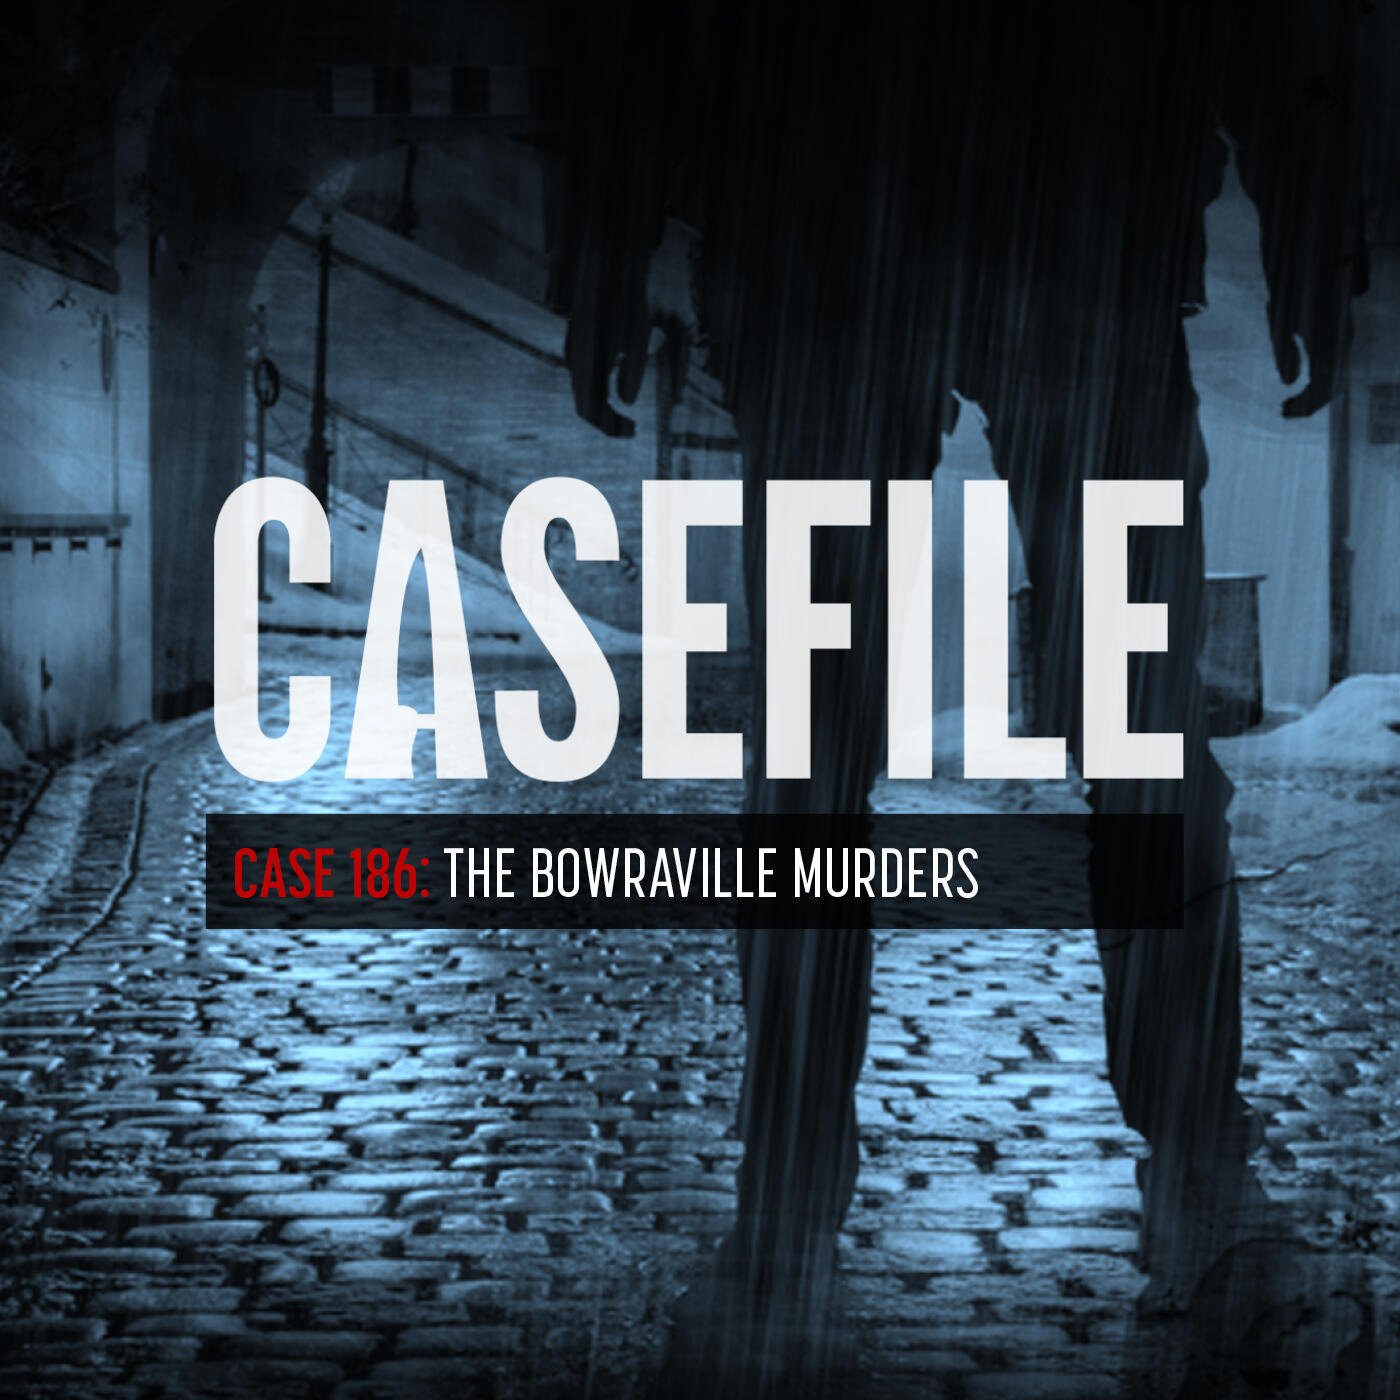 Case 186: The Bowraville Murders